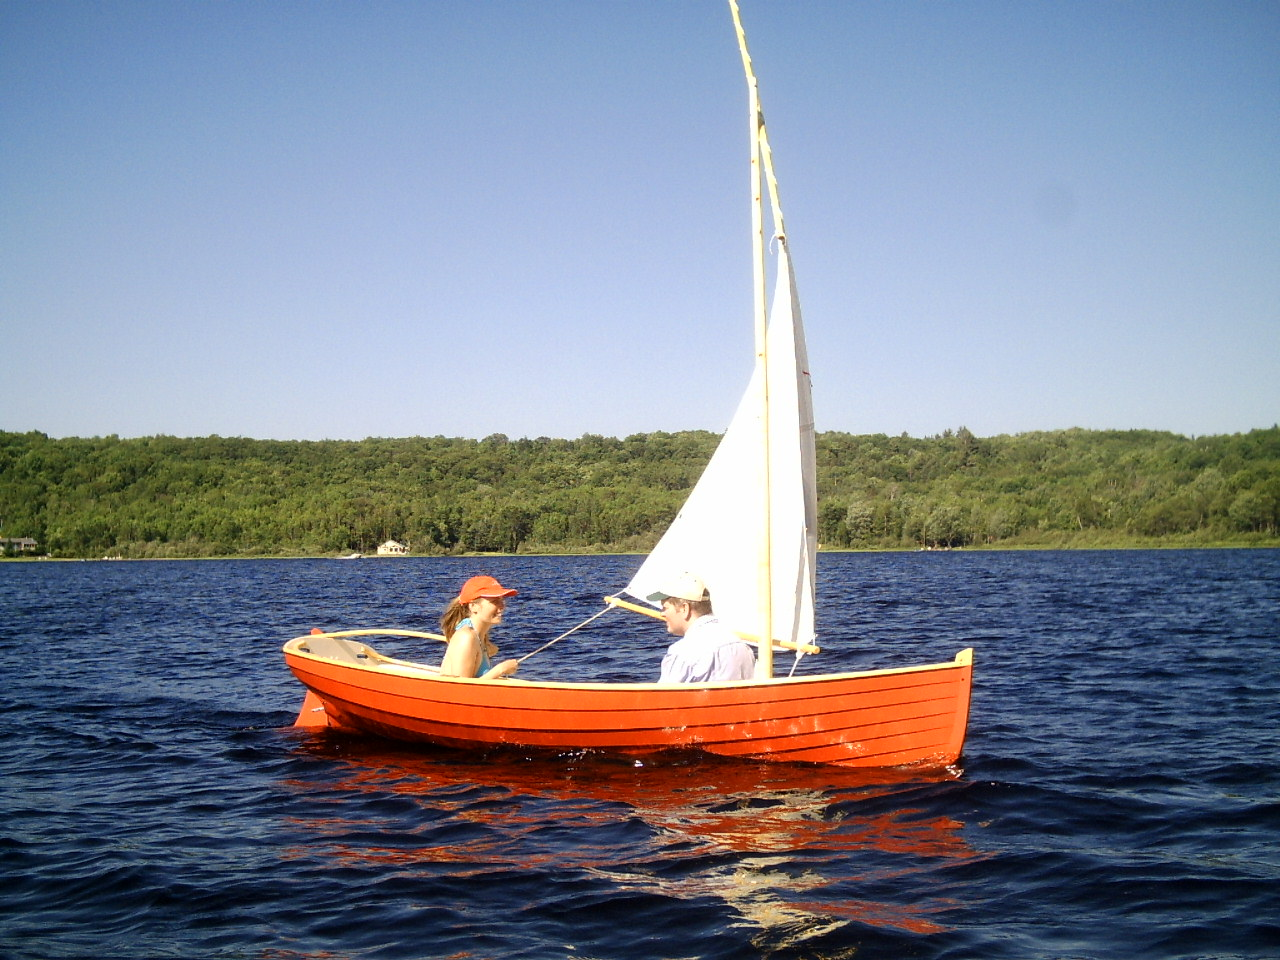 12ft 13ft acorn skiff wooden row and sail boat harwood water craft